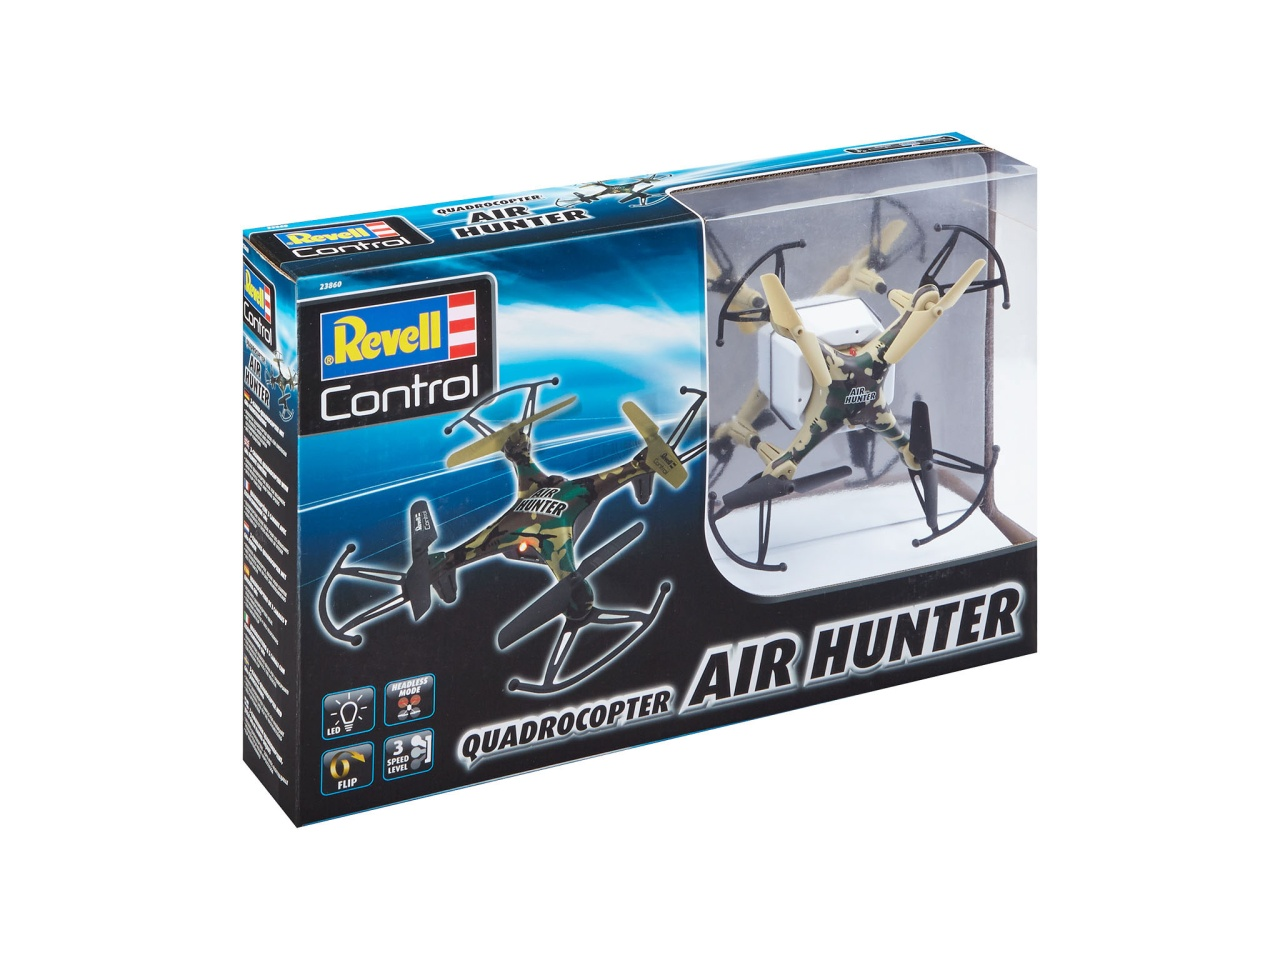 Revell 23860 Quadrocopter Air Hunter